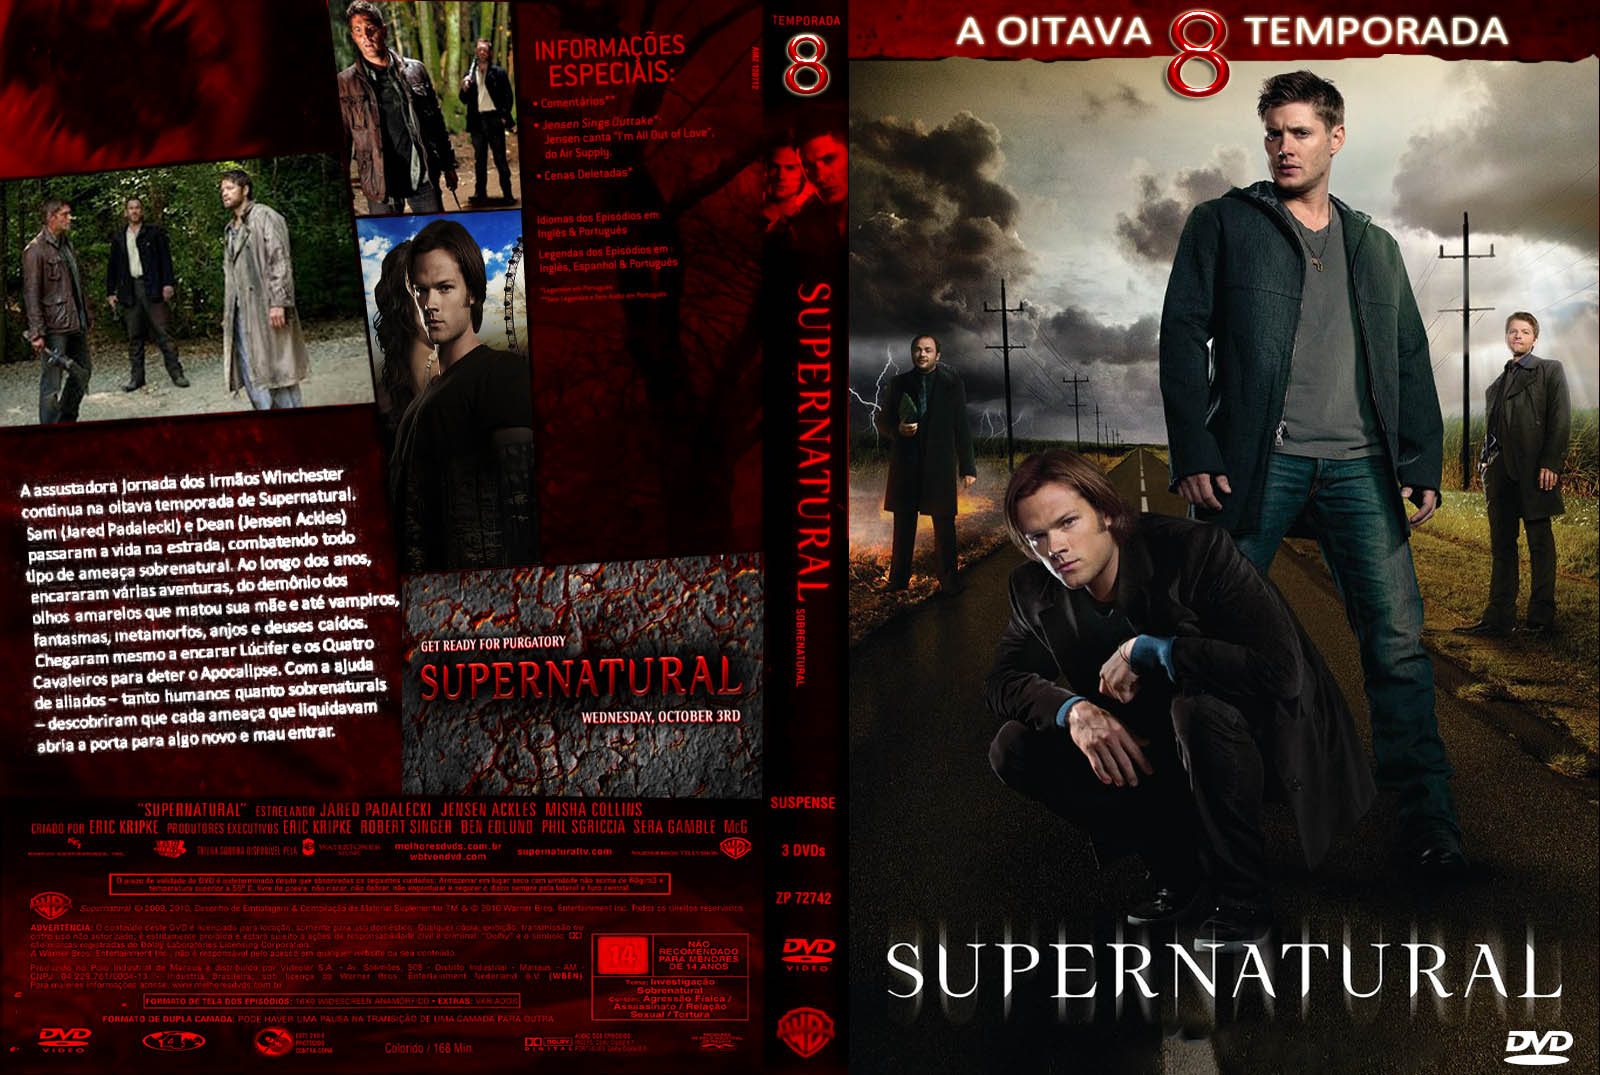 Supernatural (Sobrenatural) 1ª à 8ª Temporada Dublado – Torrent